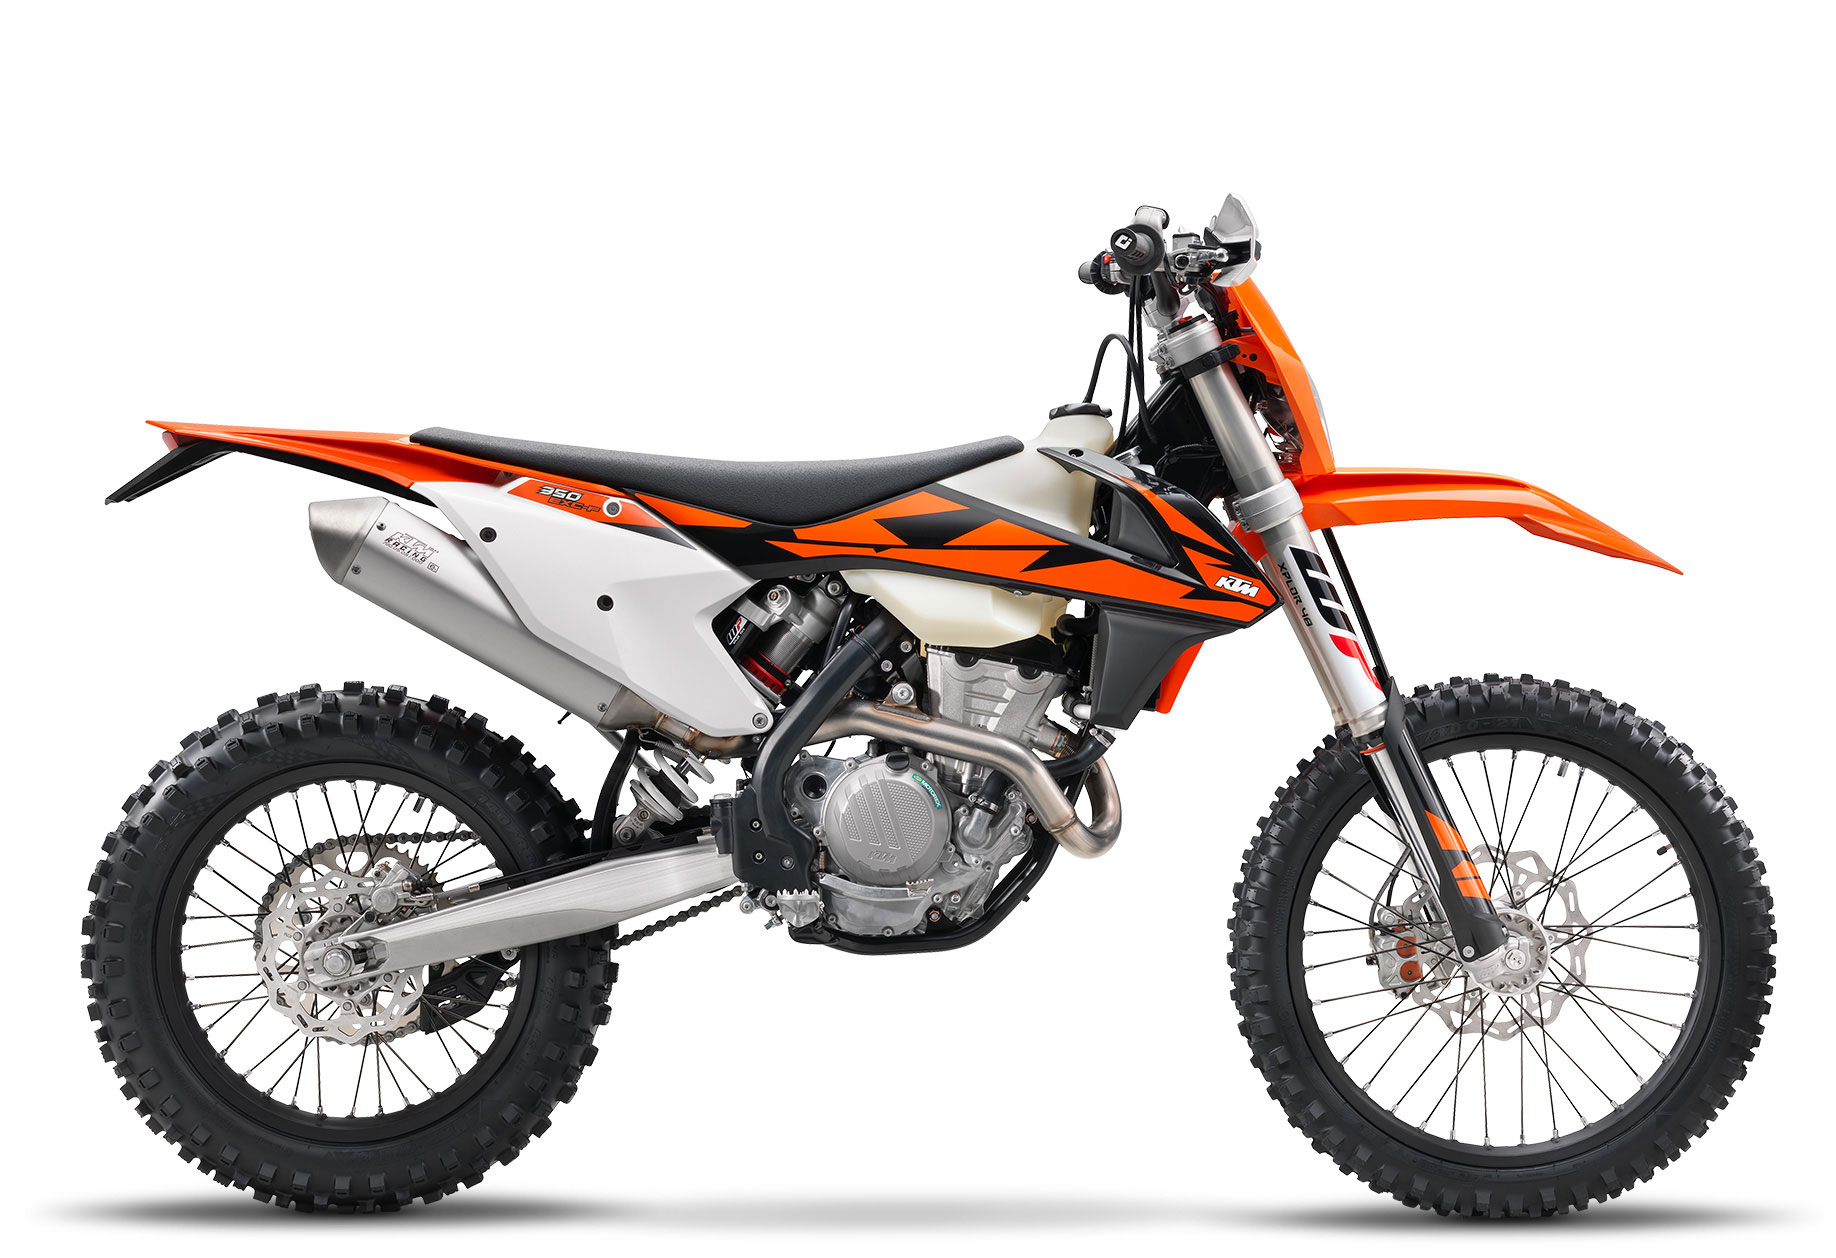 2018 ktm 350 exc f review totalmotorcycle. Black Bedroom Furniture Sets. Home Design Ideas